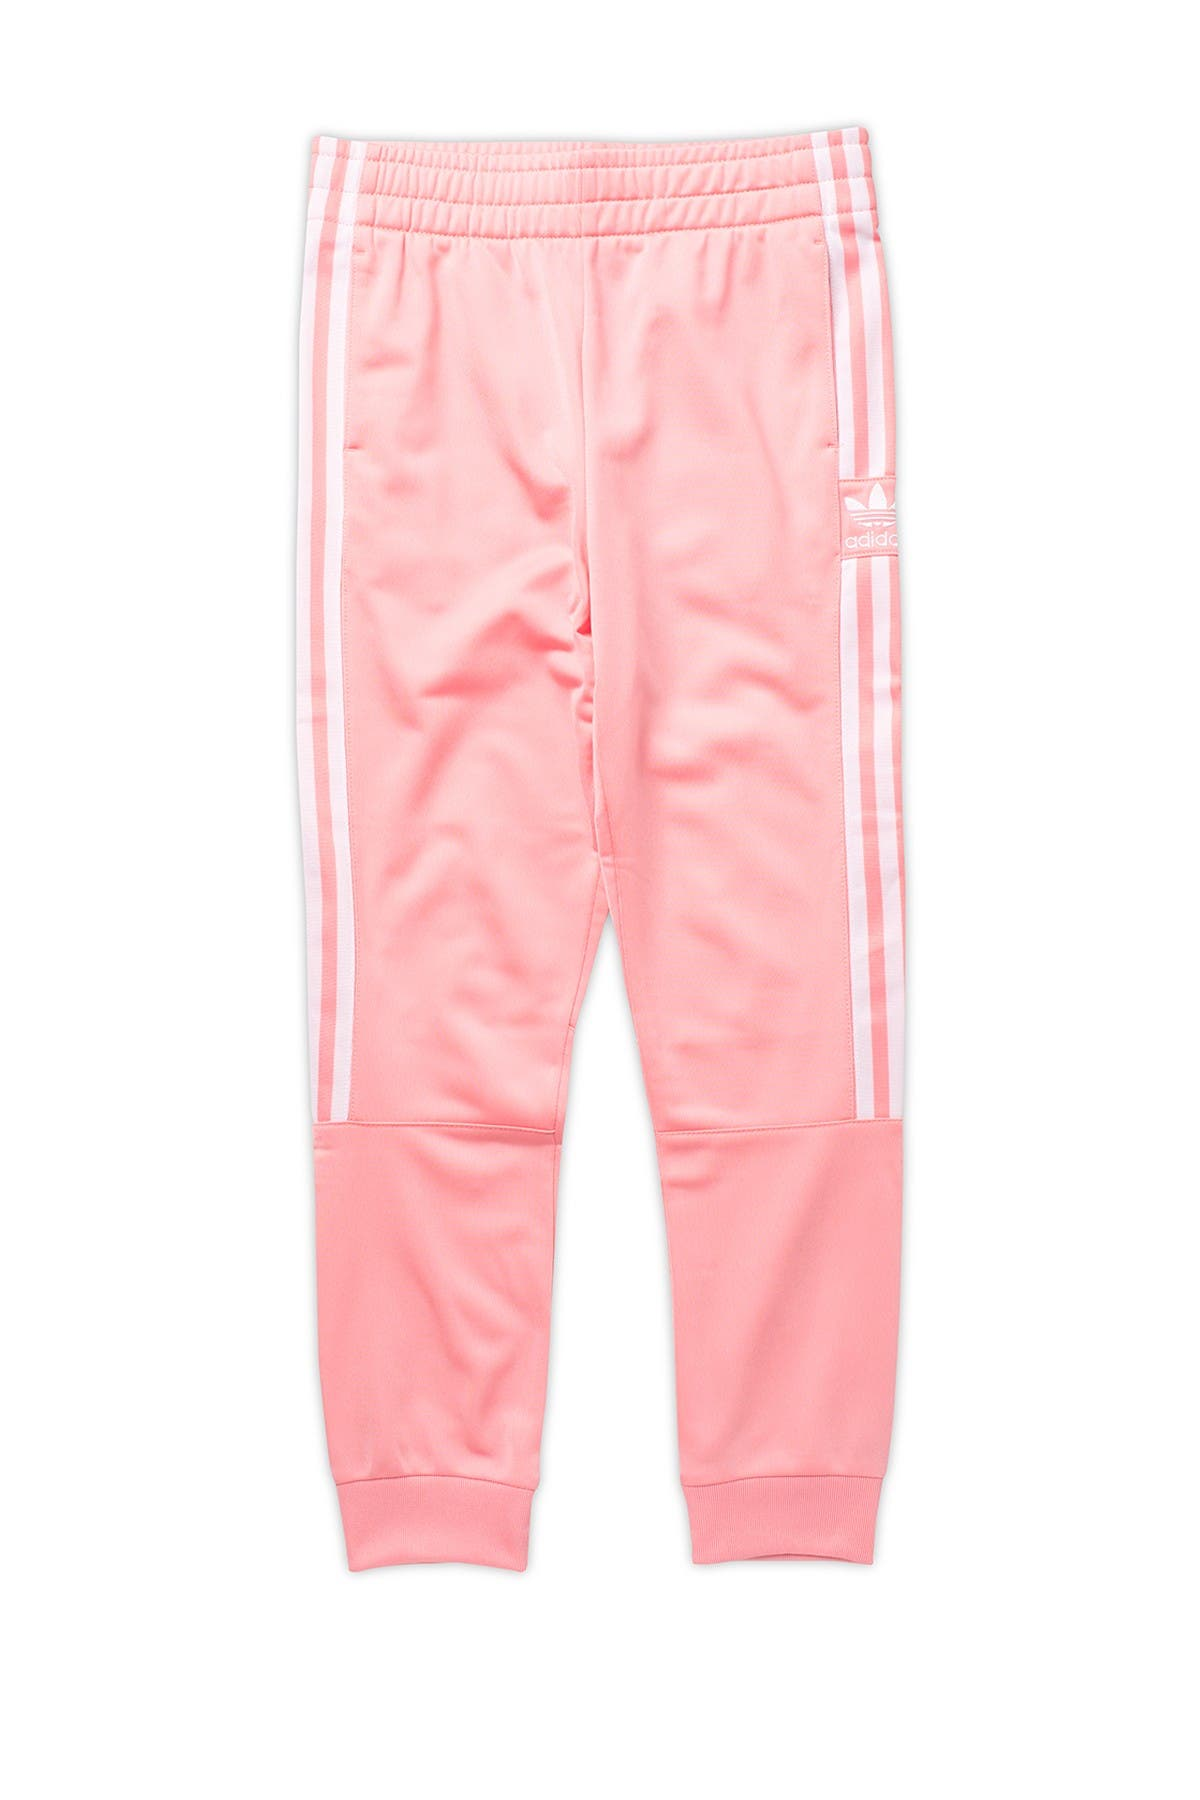 Image of ADIDAS ORIGINALS Lock Up Classic 3-Stripes Track Pants